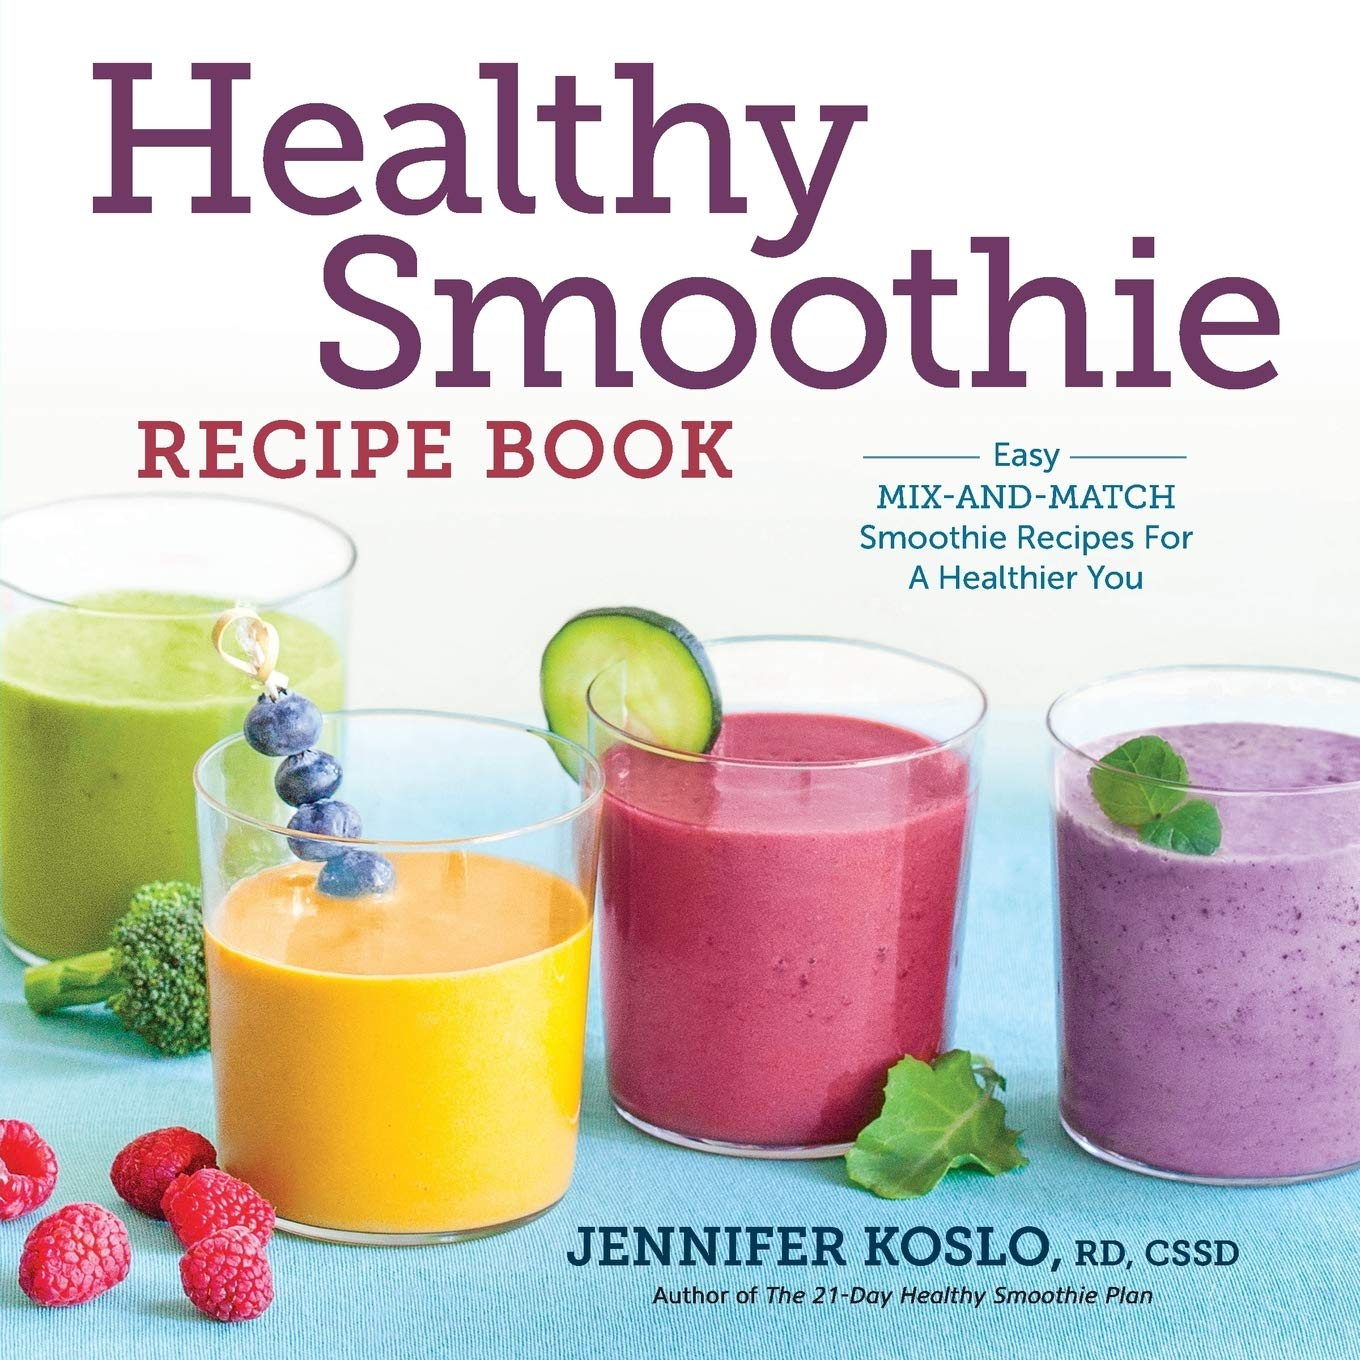 Healthy Smoothie Recipe Book: Easy Mix-and-Match Smoothie Recipes for a Healthier You 1